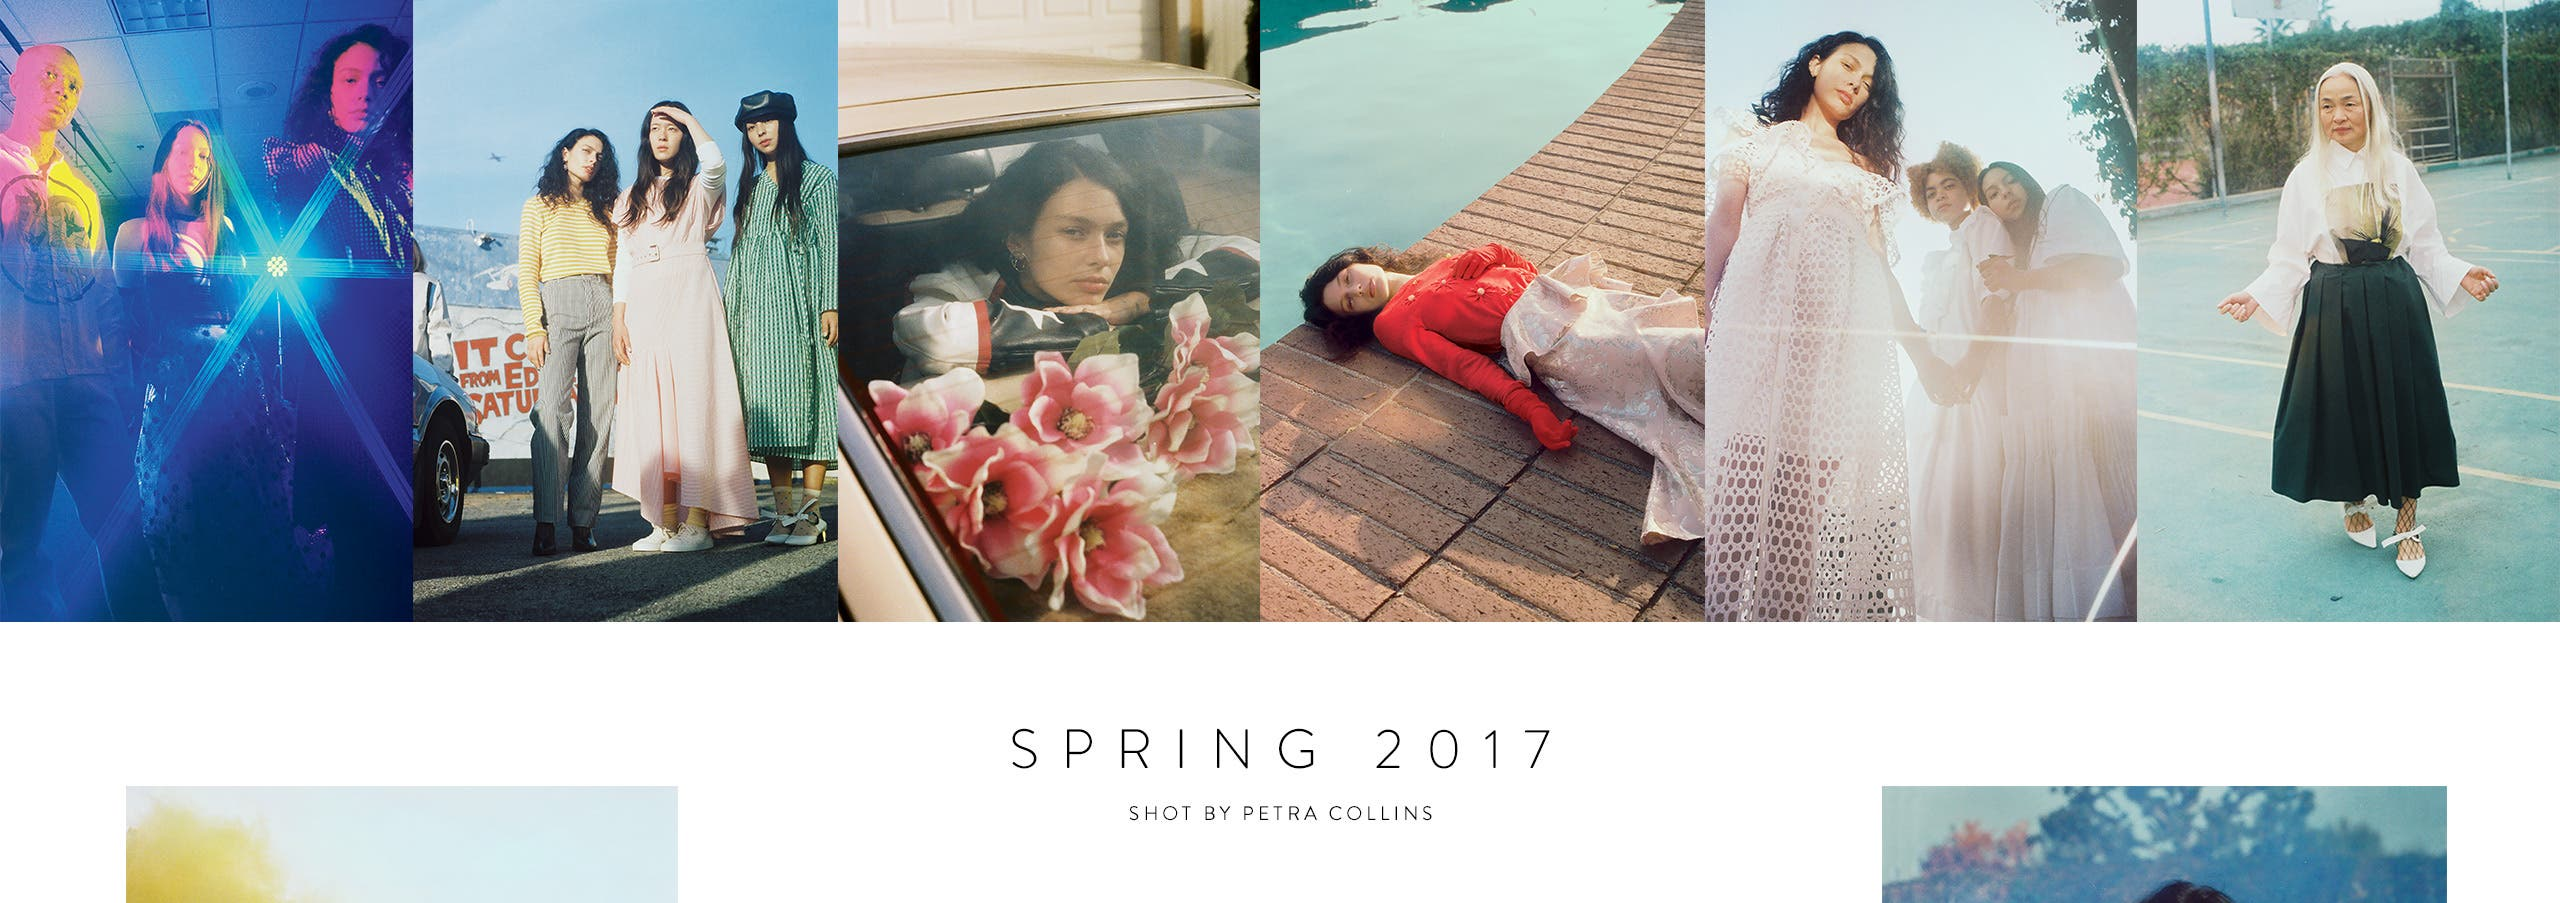 Our new spring campaign was shot by Petra Collins and features beautiful, inspiring people of all ages.